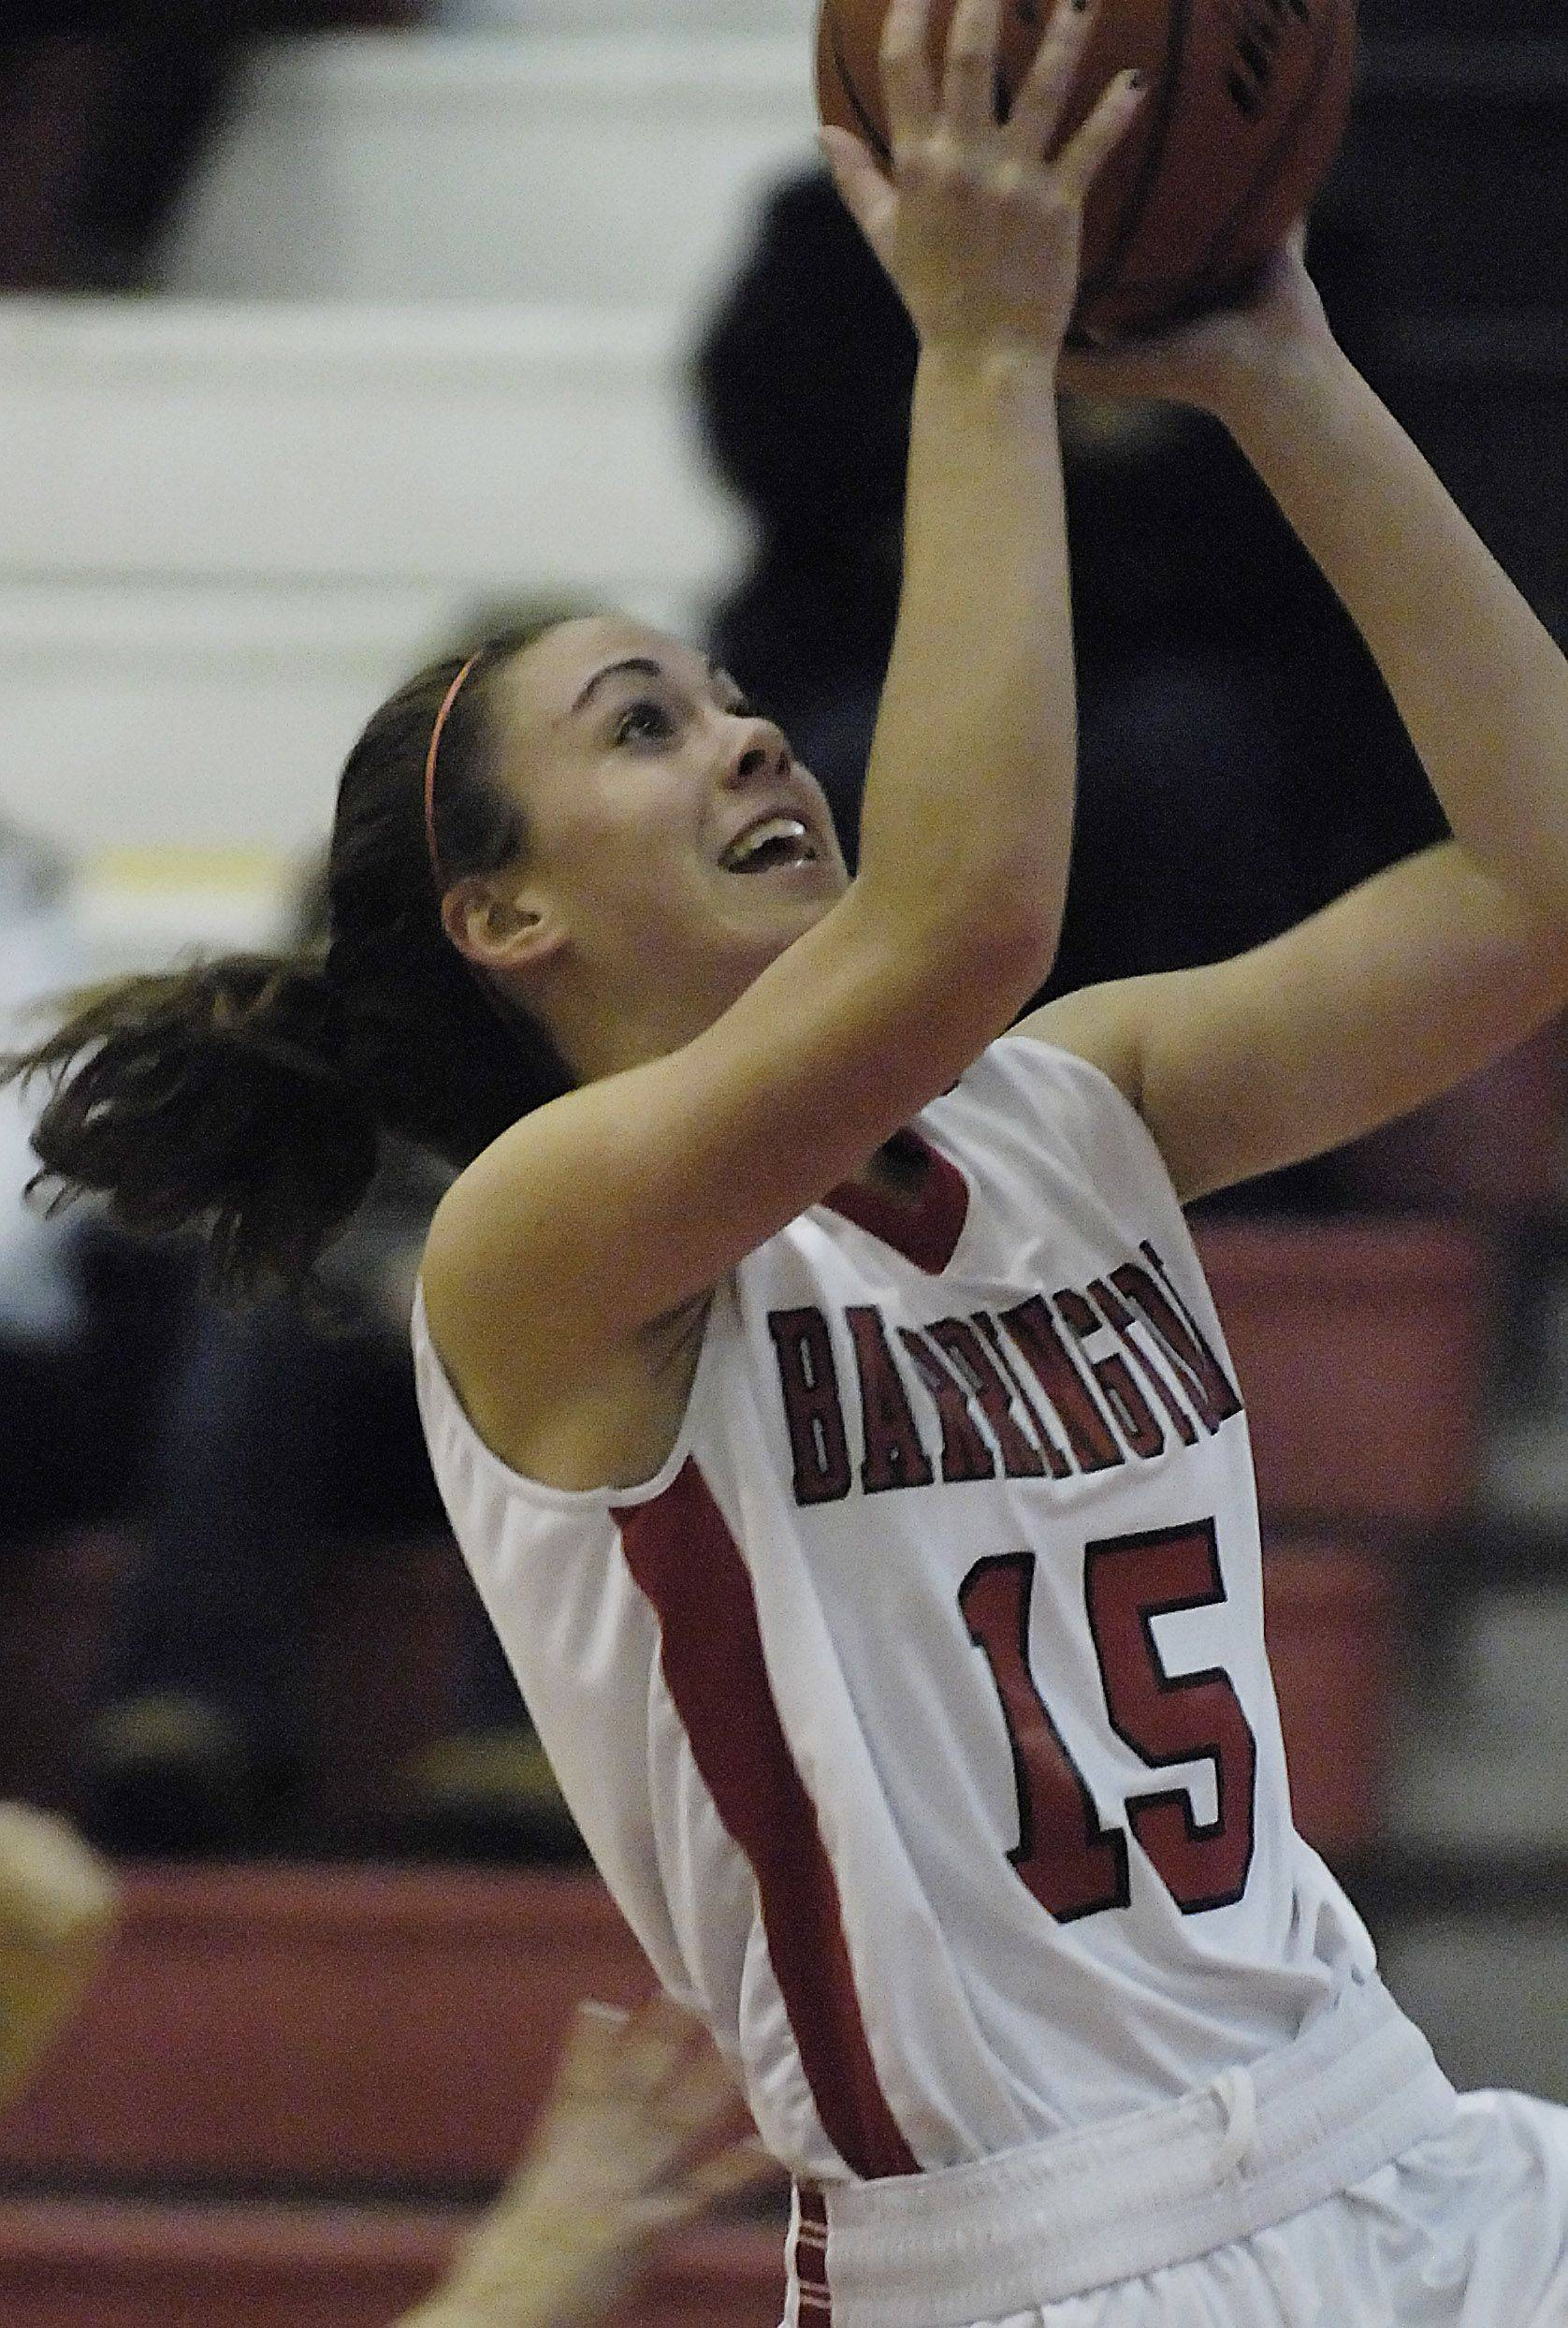 Images from the Huntley vs. Barrington girls basketball game Tuesday, December 7, 2010.